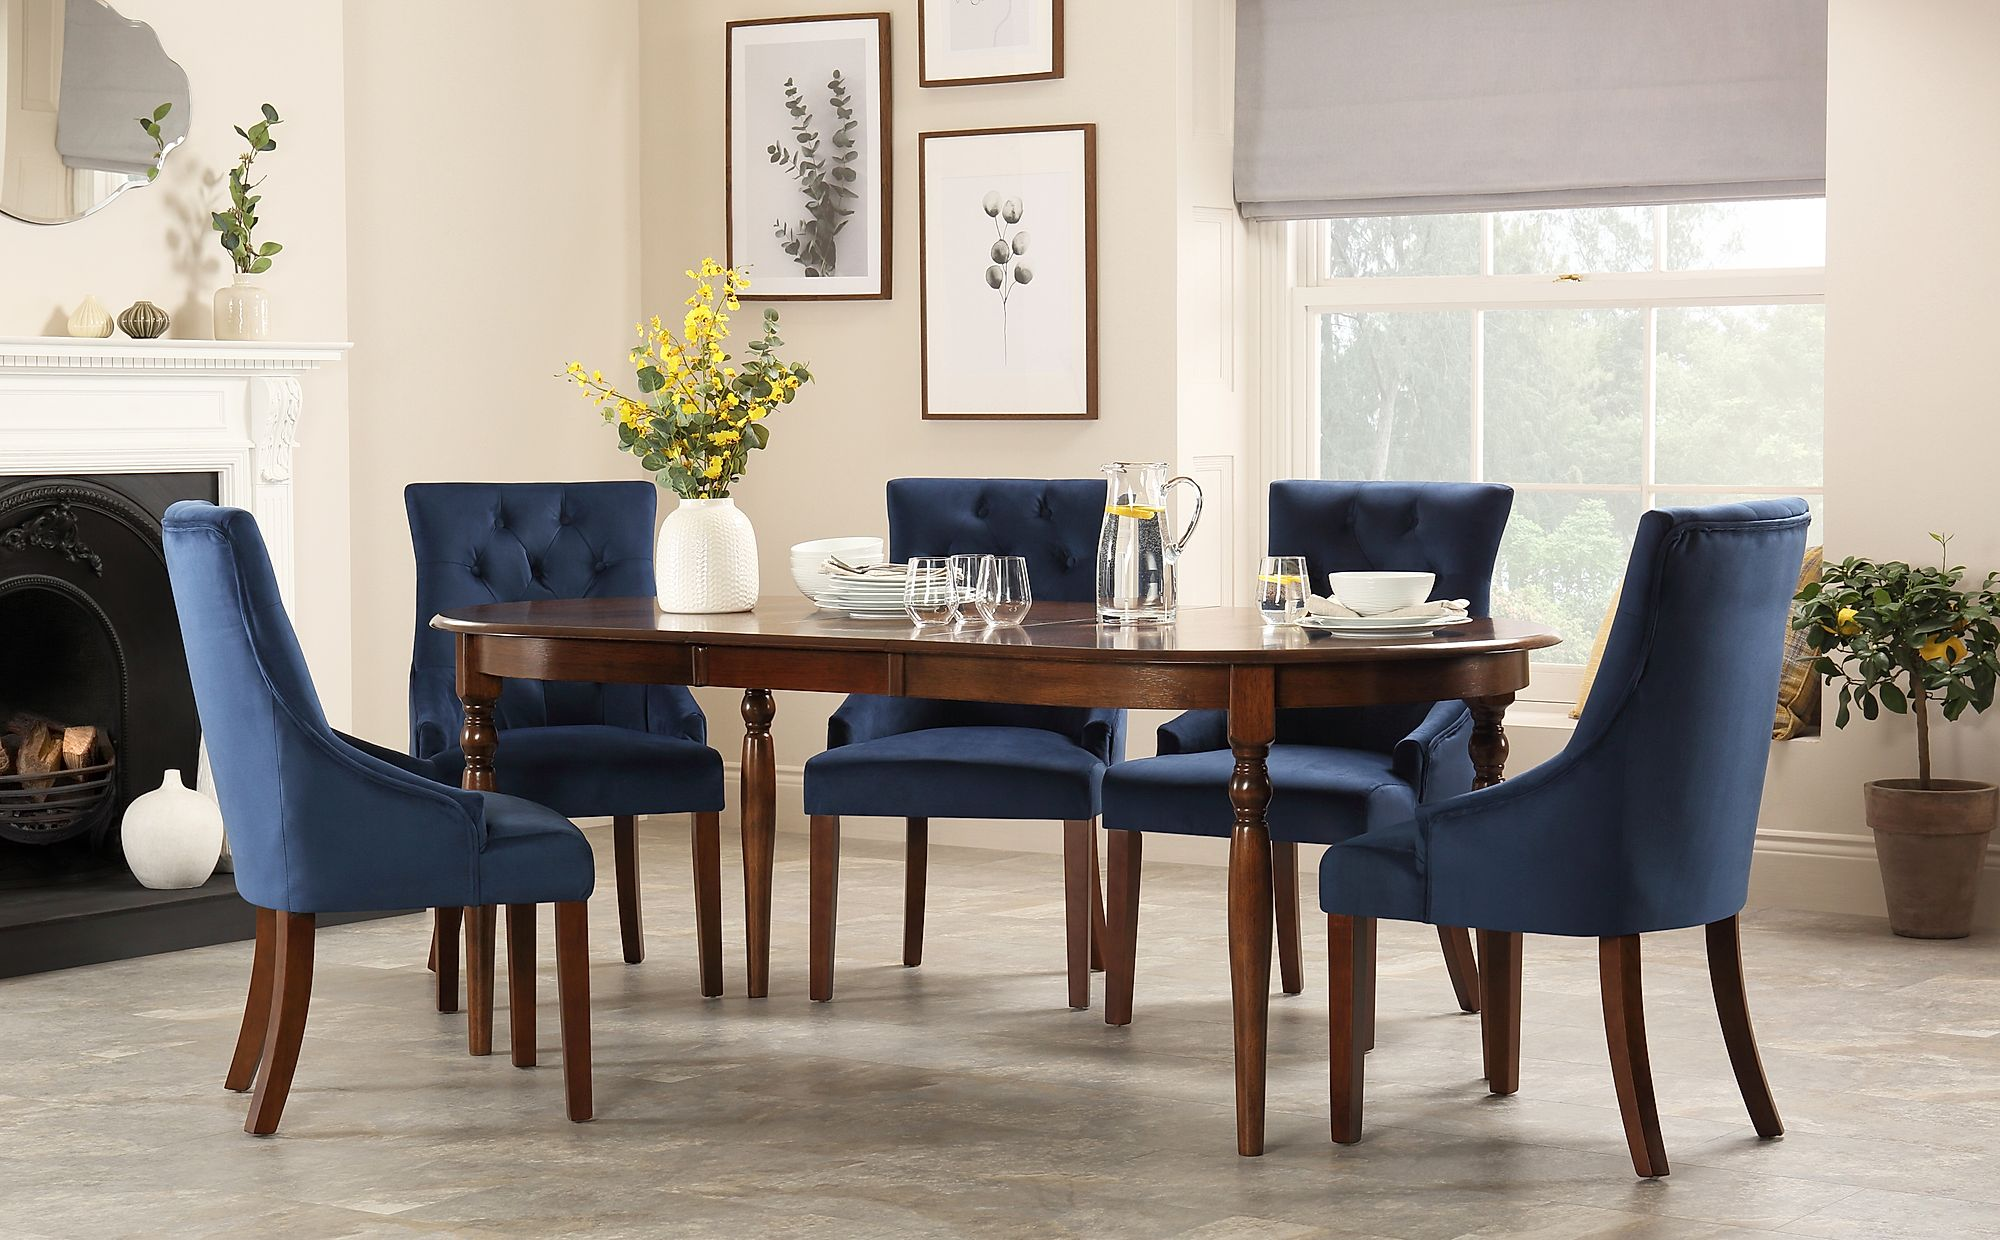 Awe Inspiring Details About Albany Oval Dark Wood Extending Dining Table 4 6 8 Duke Blue Velvet Chairs Onthecornerstone Fun Painted Chair Ideas Images Onthecornerstoneorg